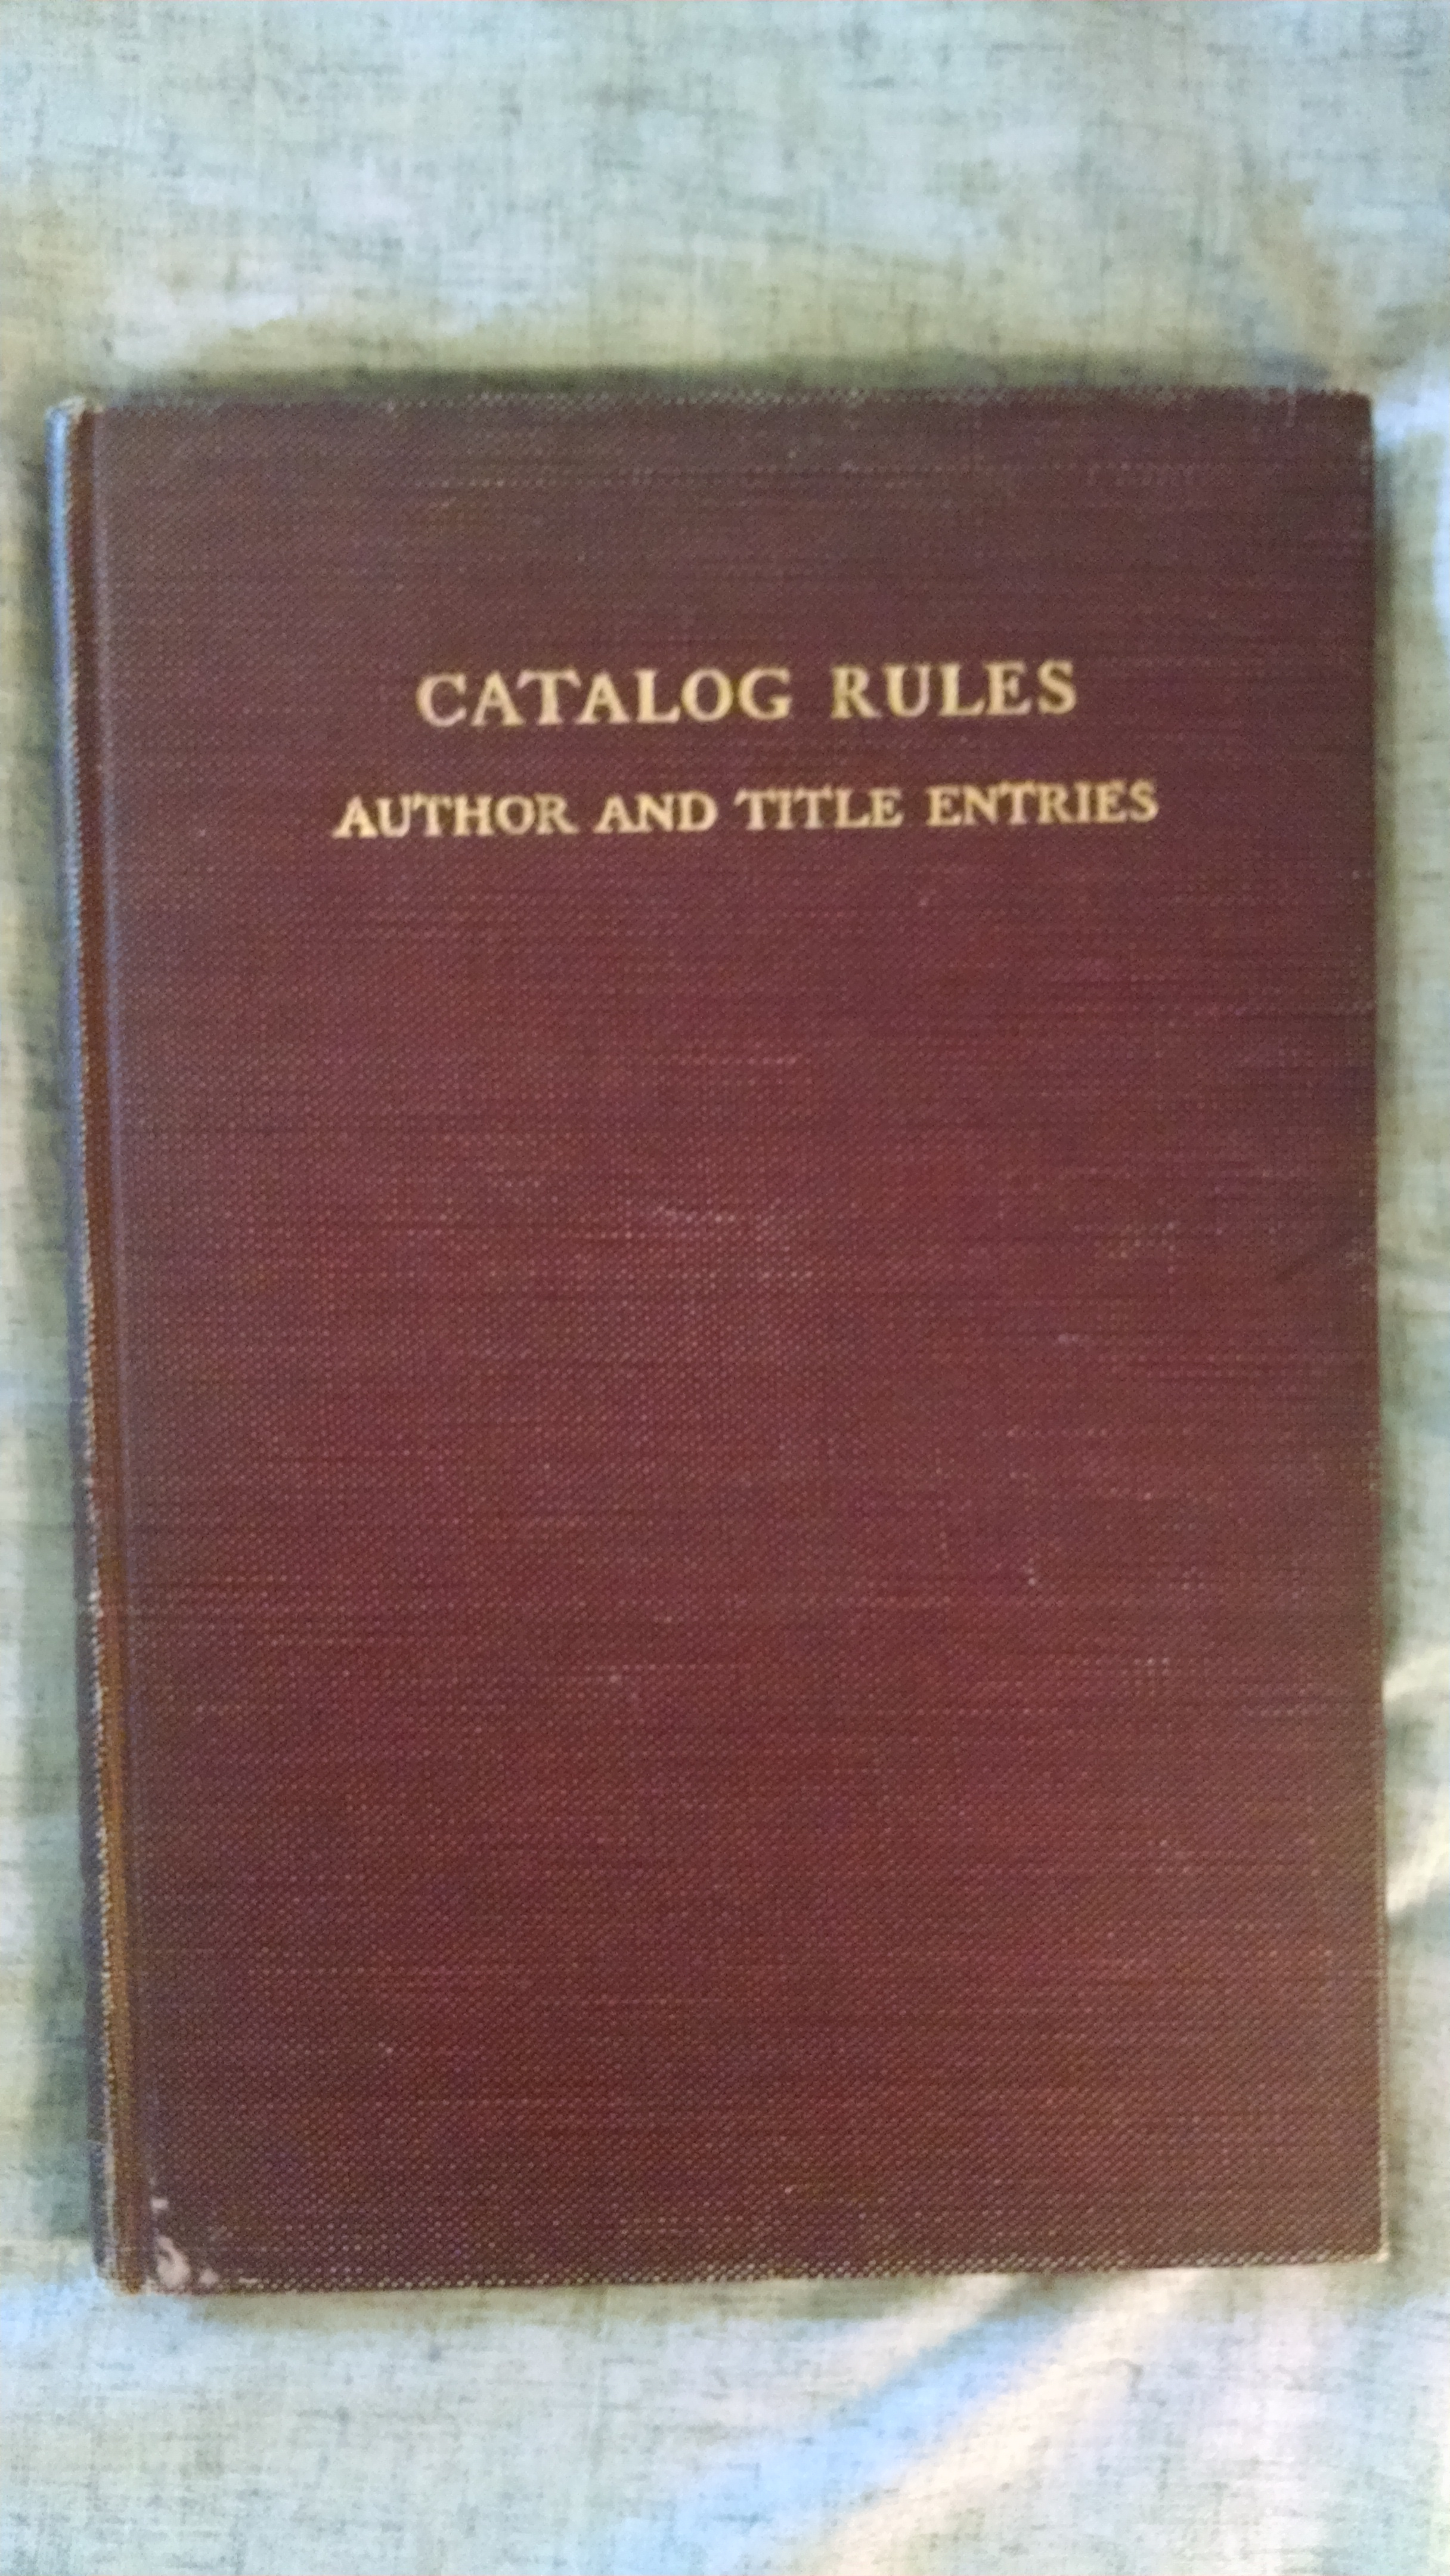 Image for CATALOG RULES  AUTHOR AND TITLE ENTRIES